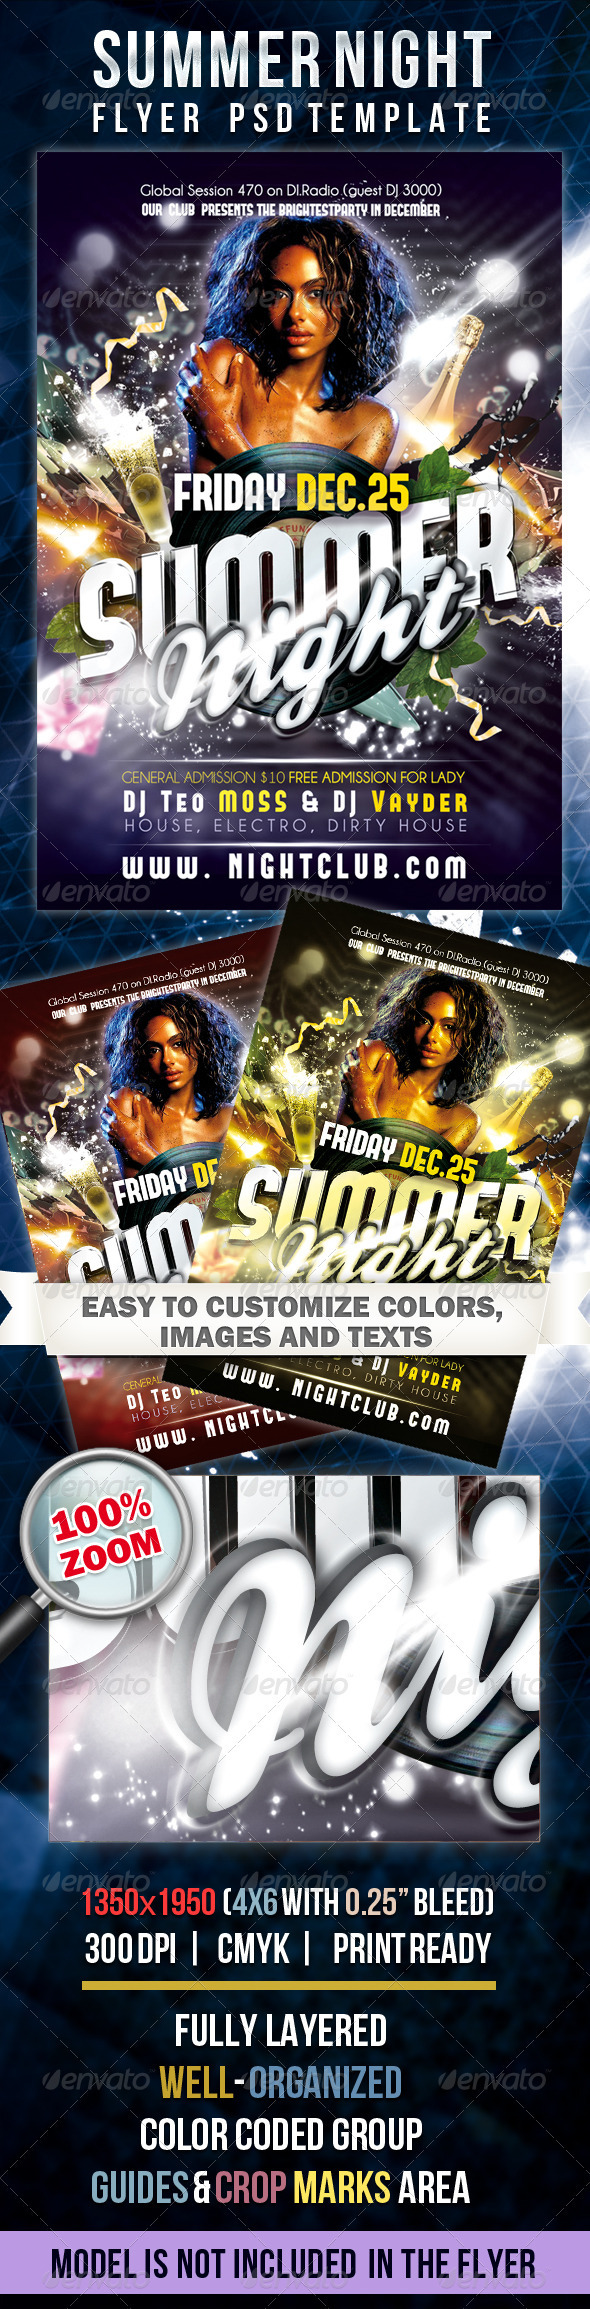 Summer Night - Flyer PSD Template